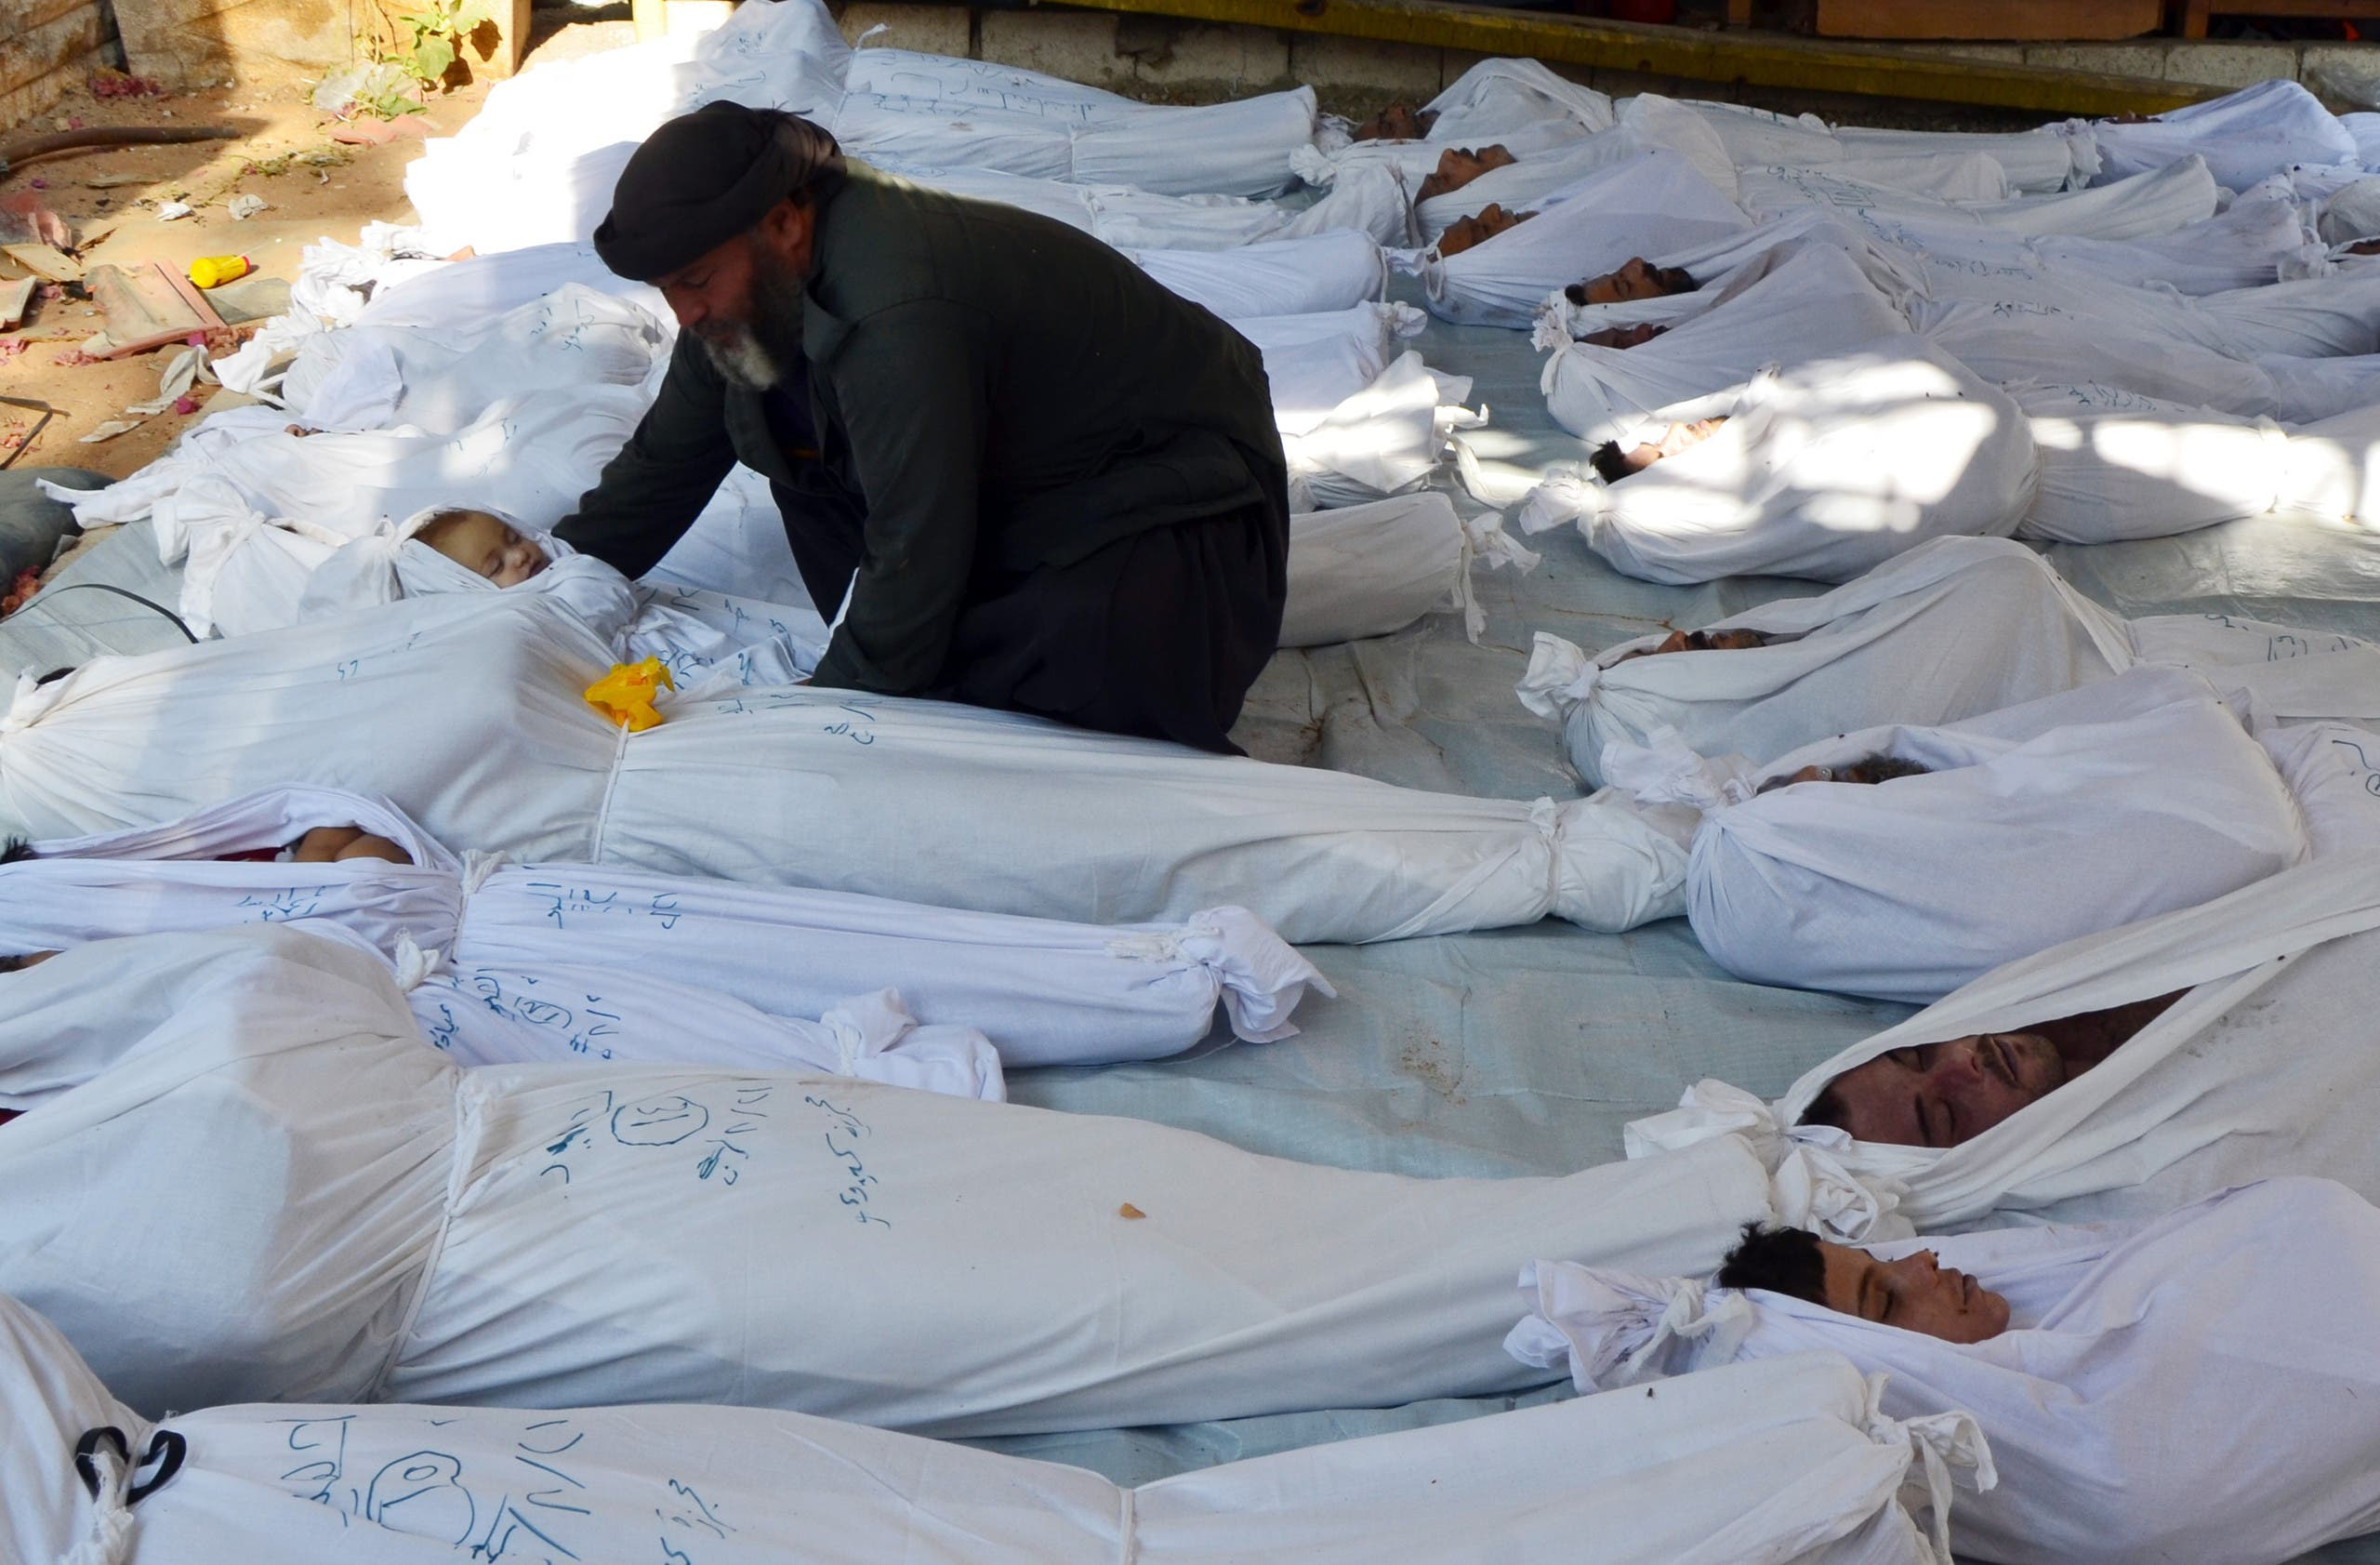 A man holds the body of a dead child among bodies of people activists say were killed by nerve gas in Ghouta, a rebel-controlled suburb of the Syrian capital Damascus, Syria August 21, 2013. REUTERS